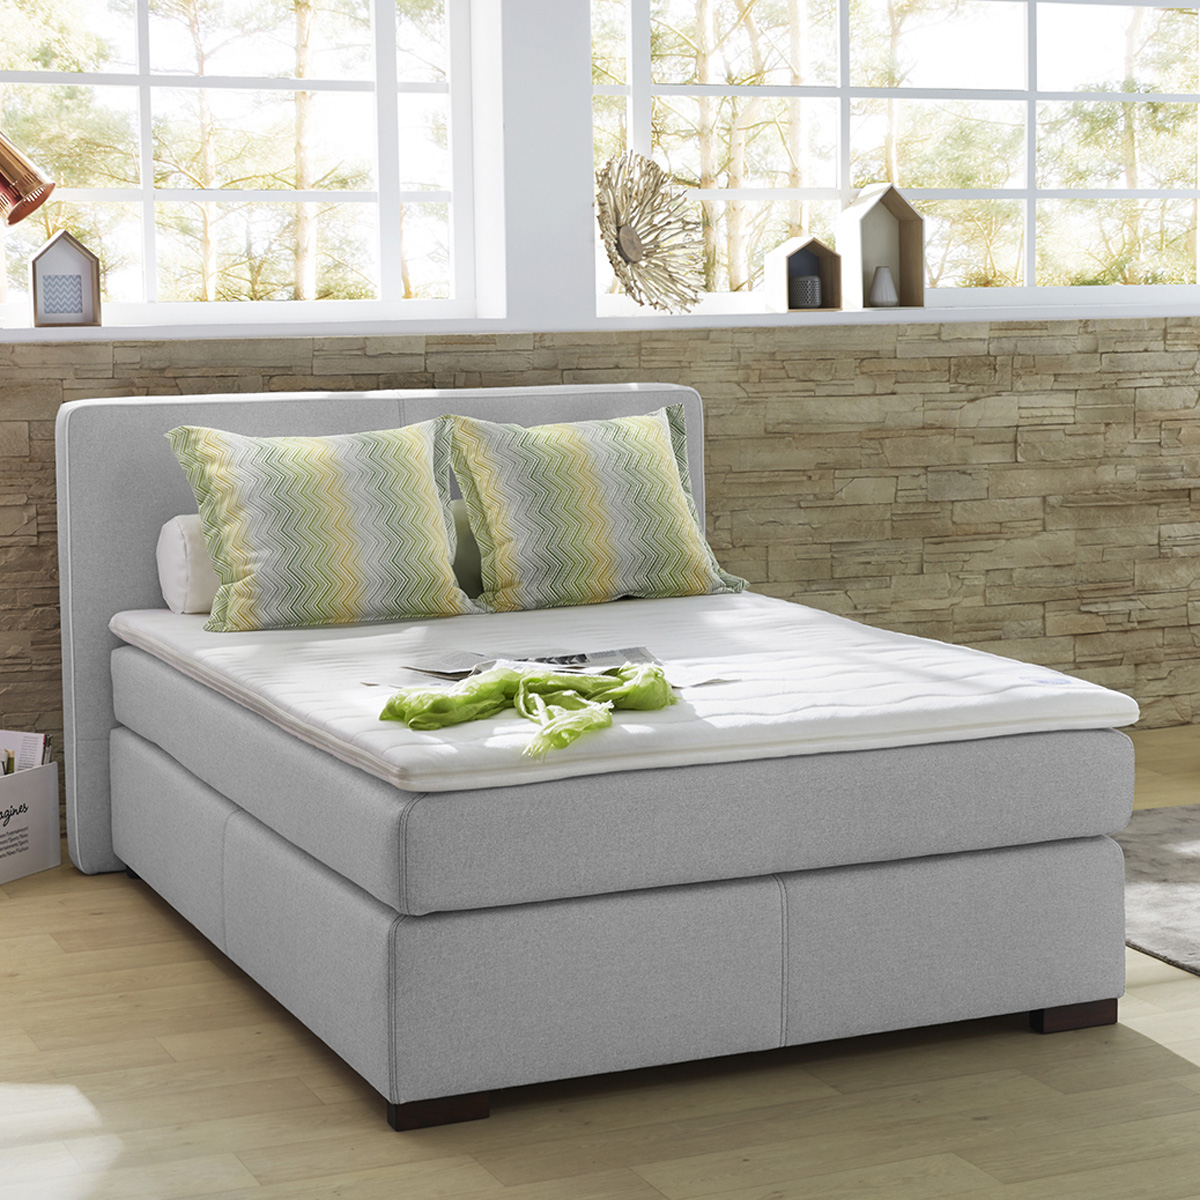 Boxspringbett Your Home Bett 140x200 Boxspringbett Boxspringbett Bx 300 Bett